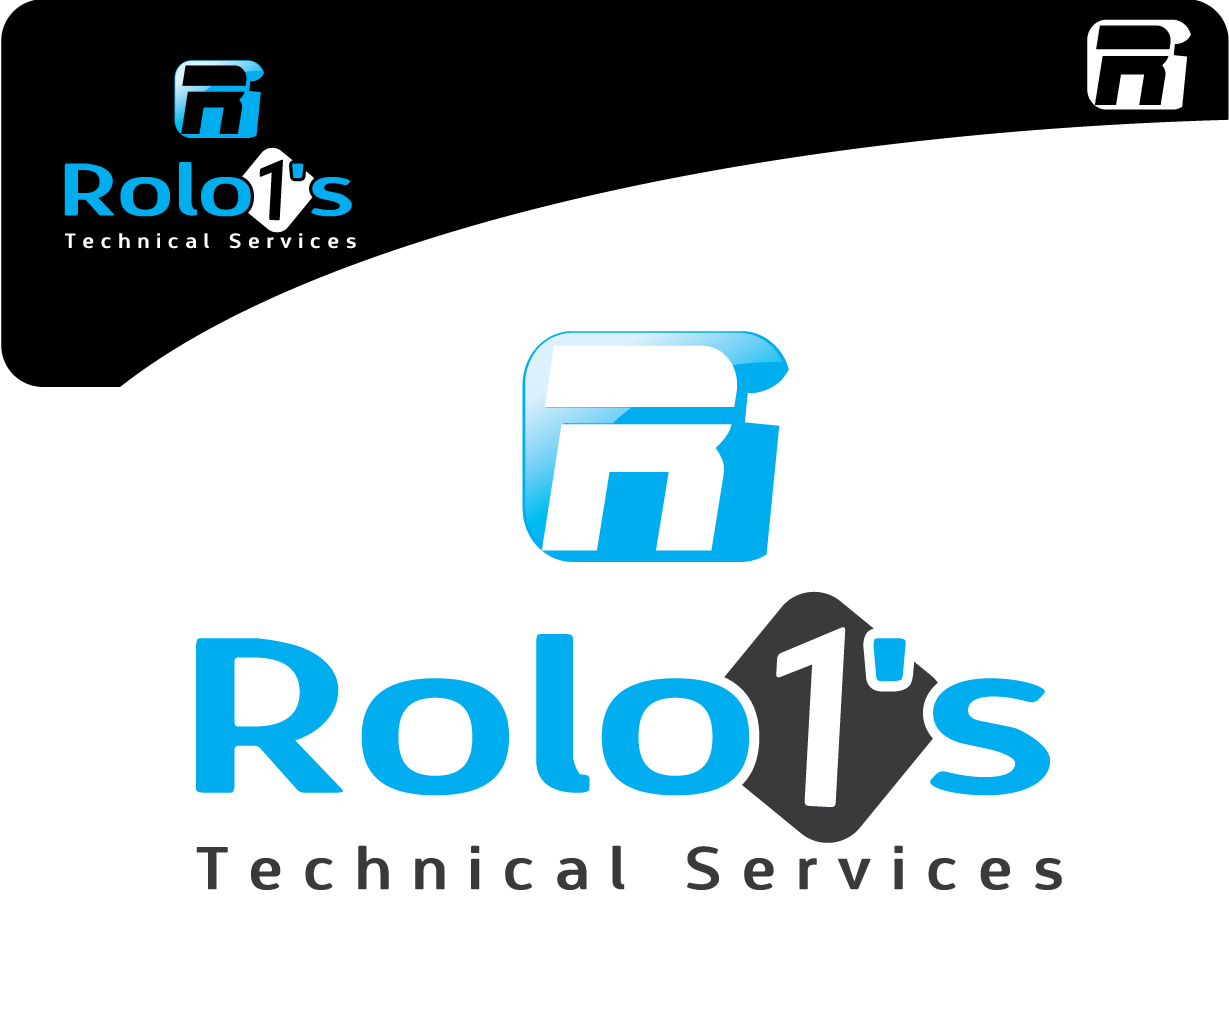 Logo Design by 354studio - Entry No. 49 in the Logo Design Contest Inspiring Logo Design for Rolo1's Technical Services.